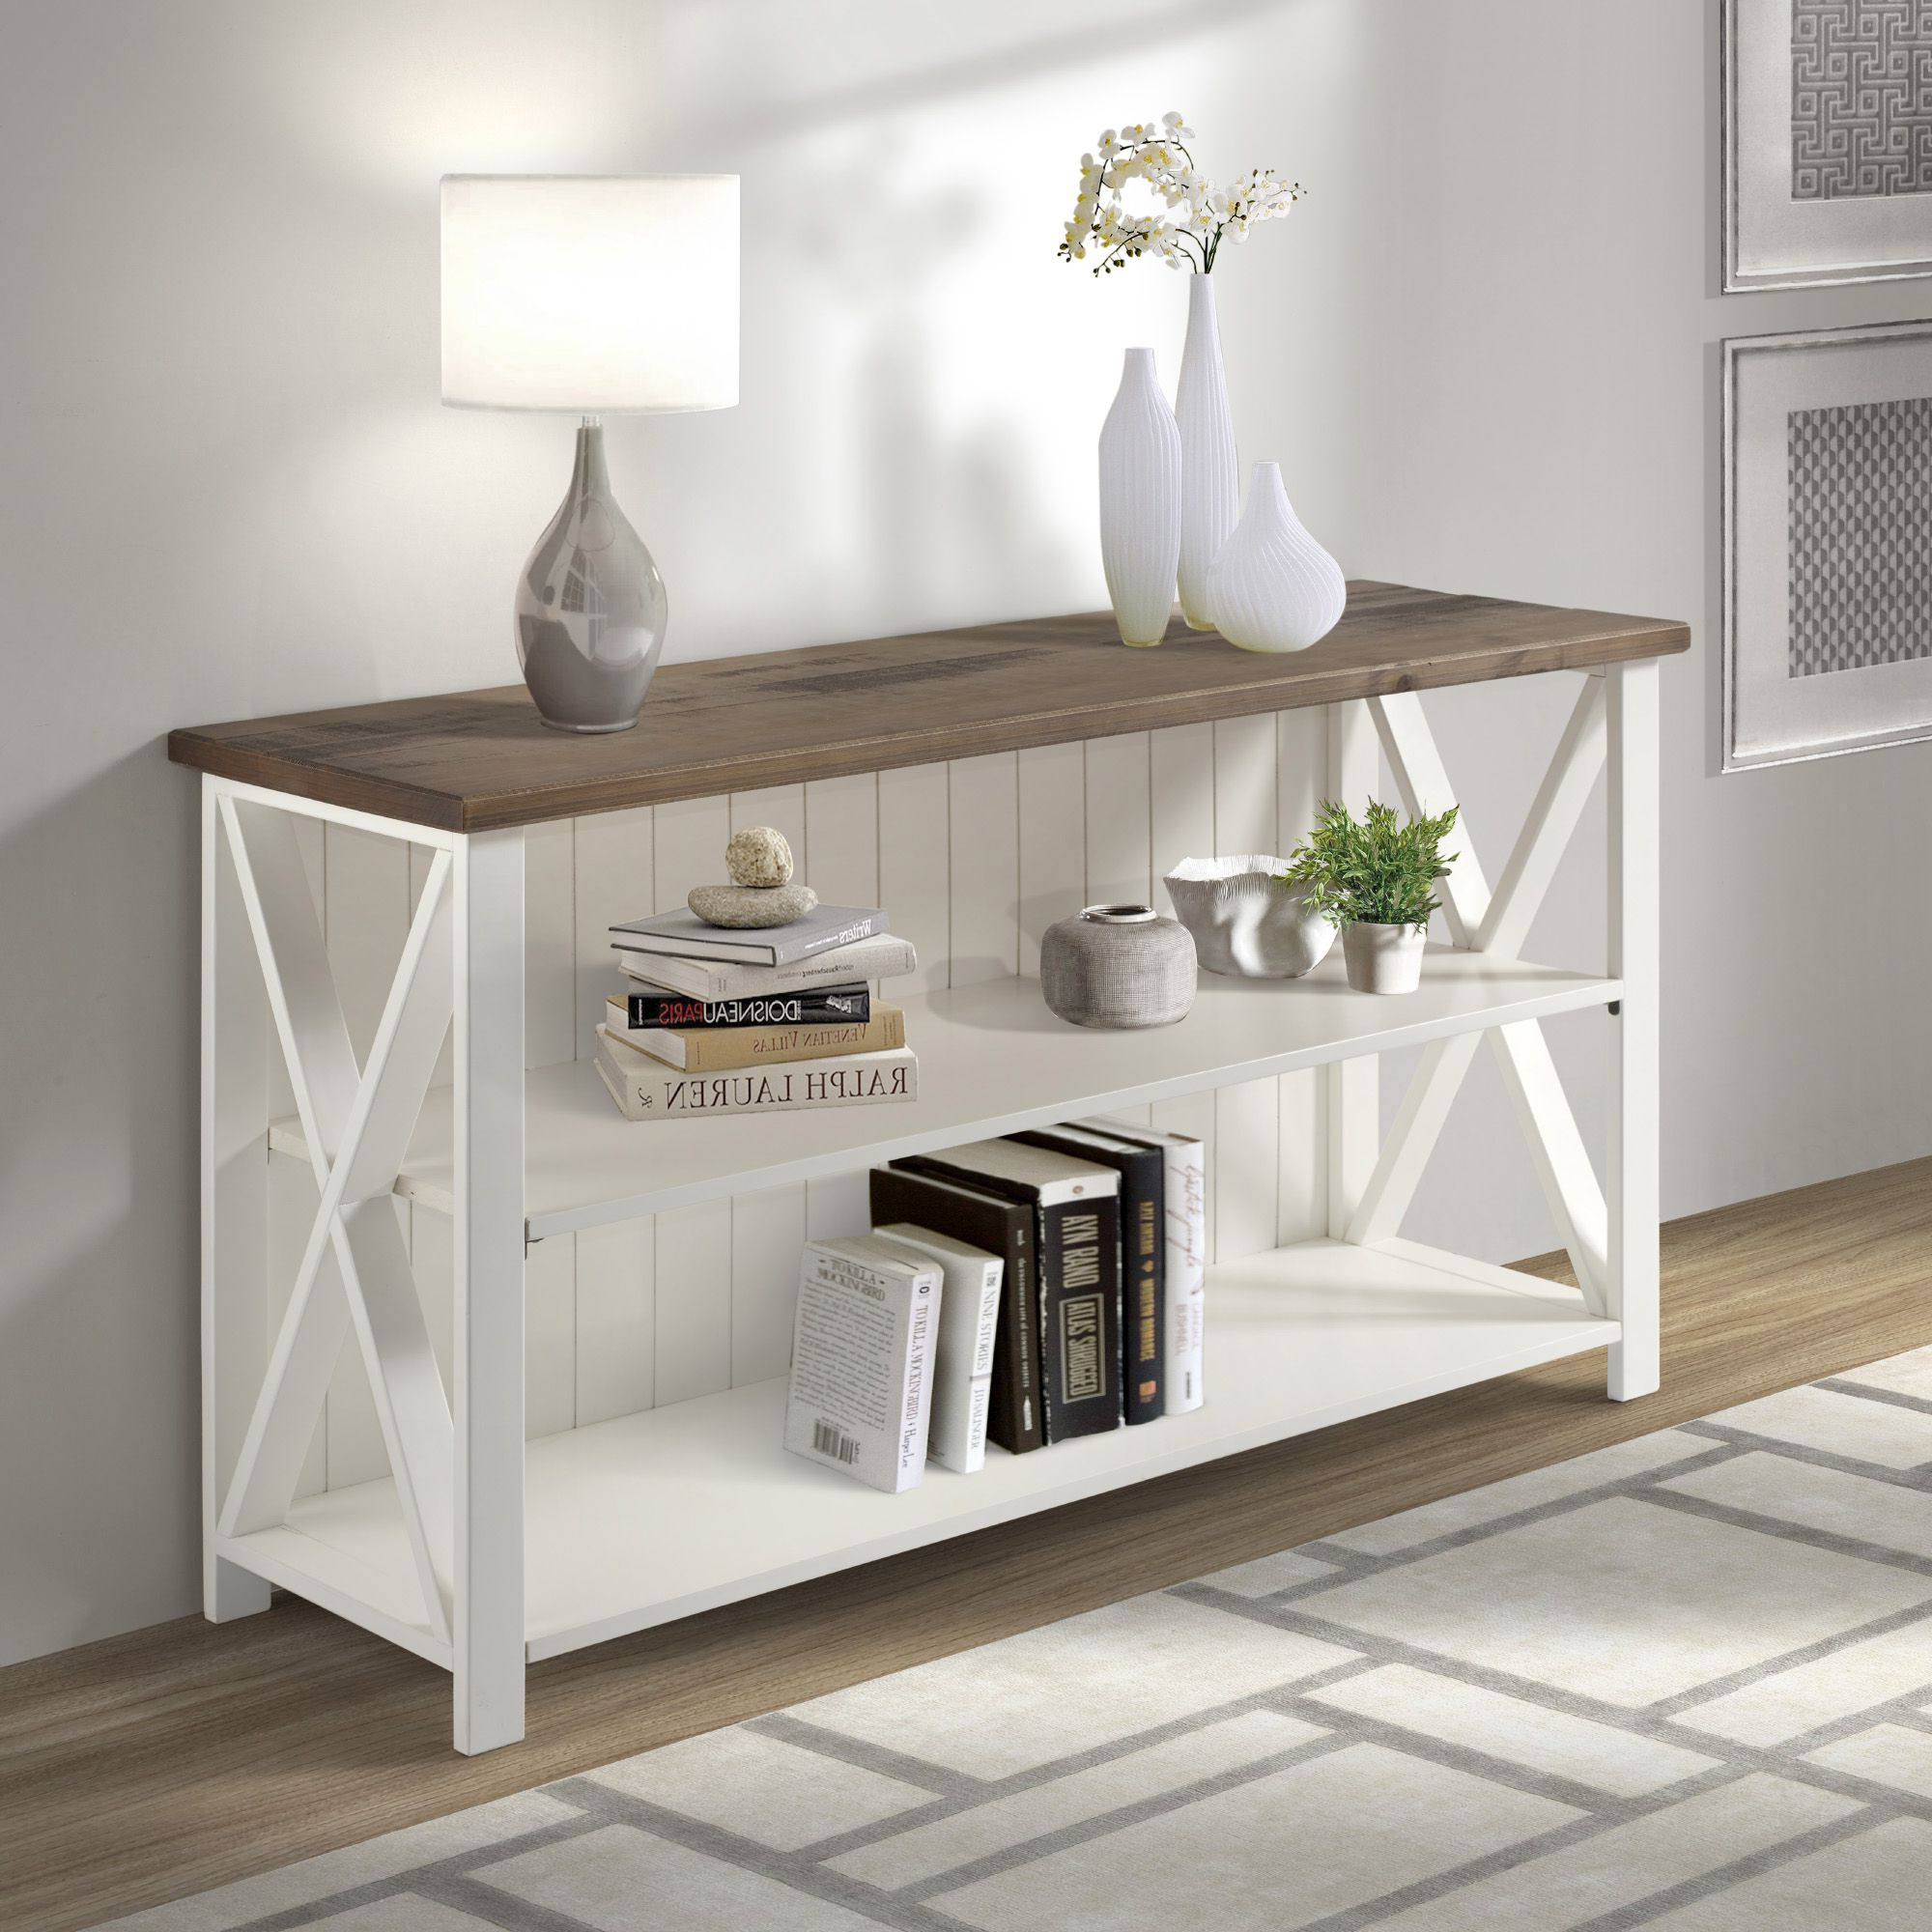 Woven Paths Farmhouse Barn Door Tv Stands In Multiple Finishes For Well Known Woven Paths Solid Wood Storage Console Table, White (View 6 of 10)